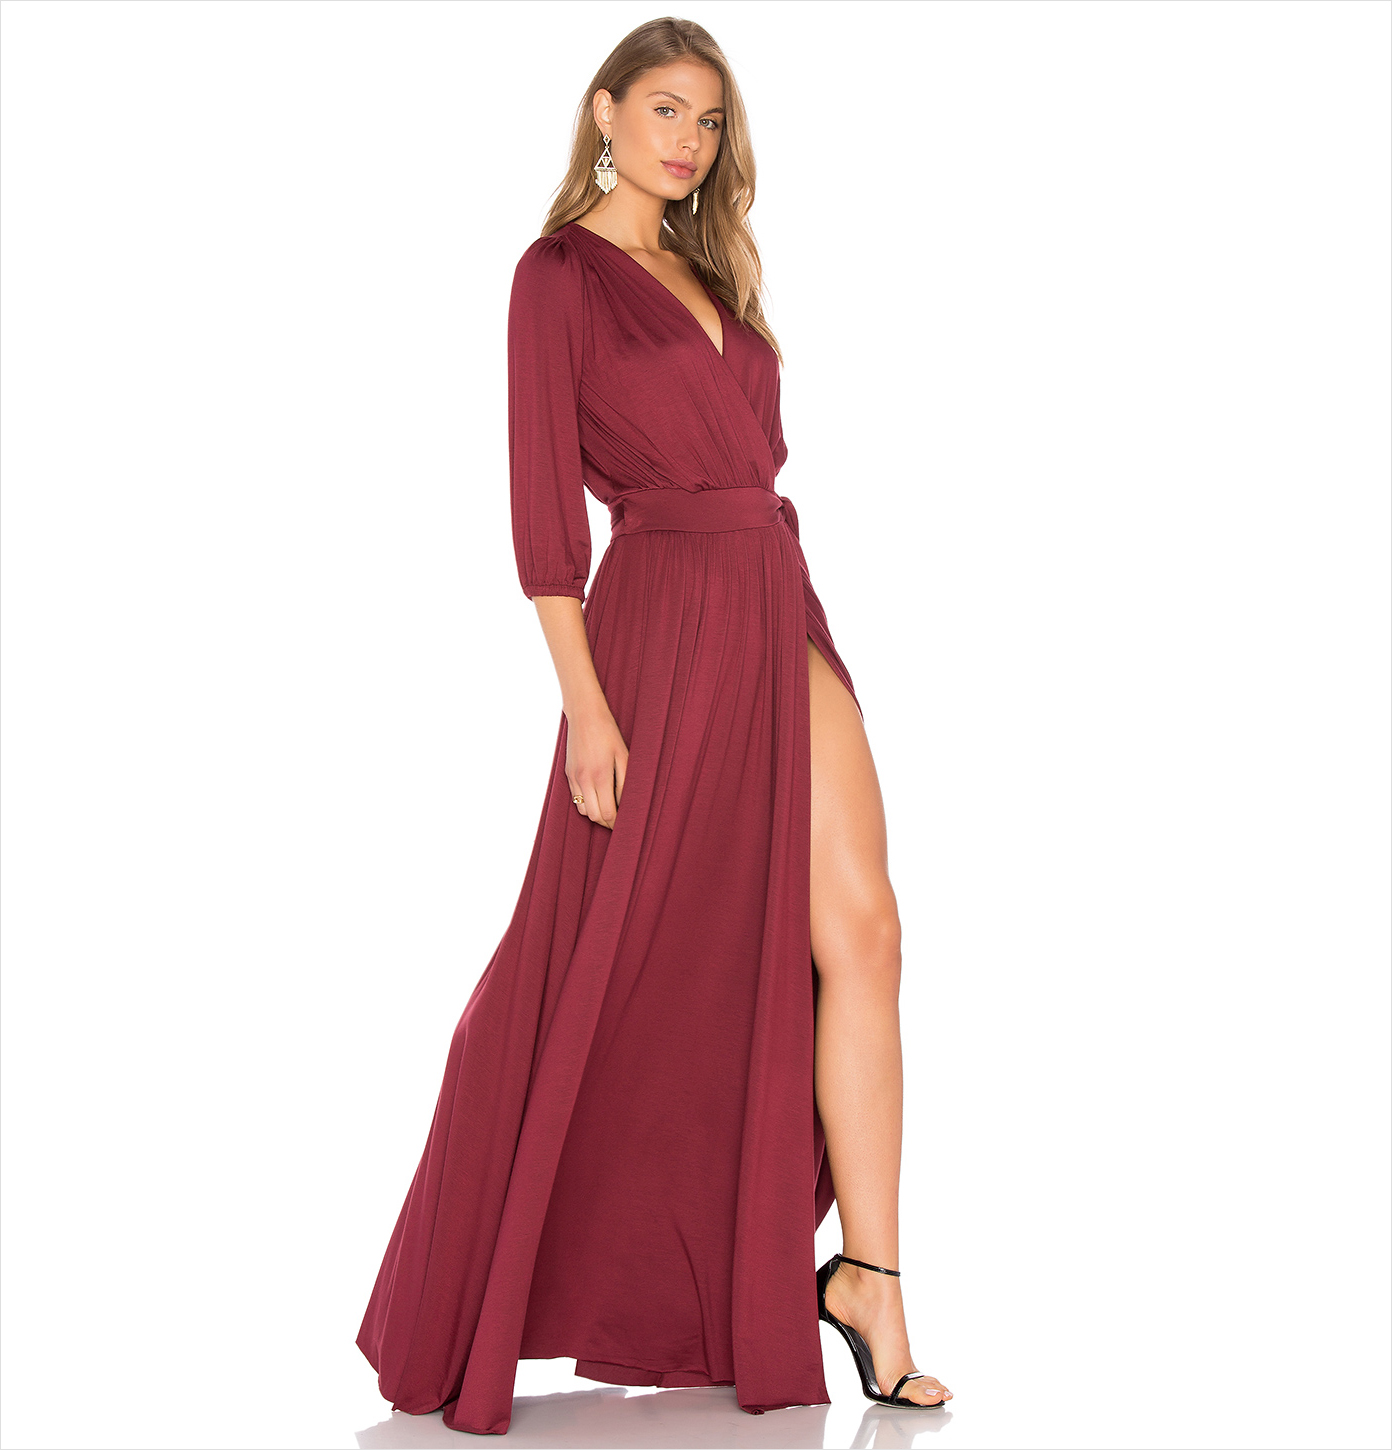 Wedding Guest Dress Ideas Long Sleeve Dresses Inside